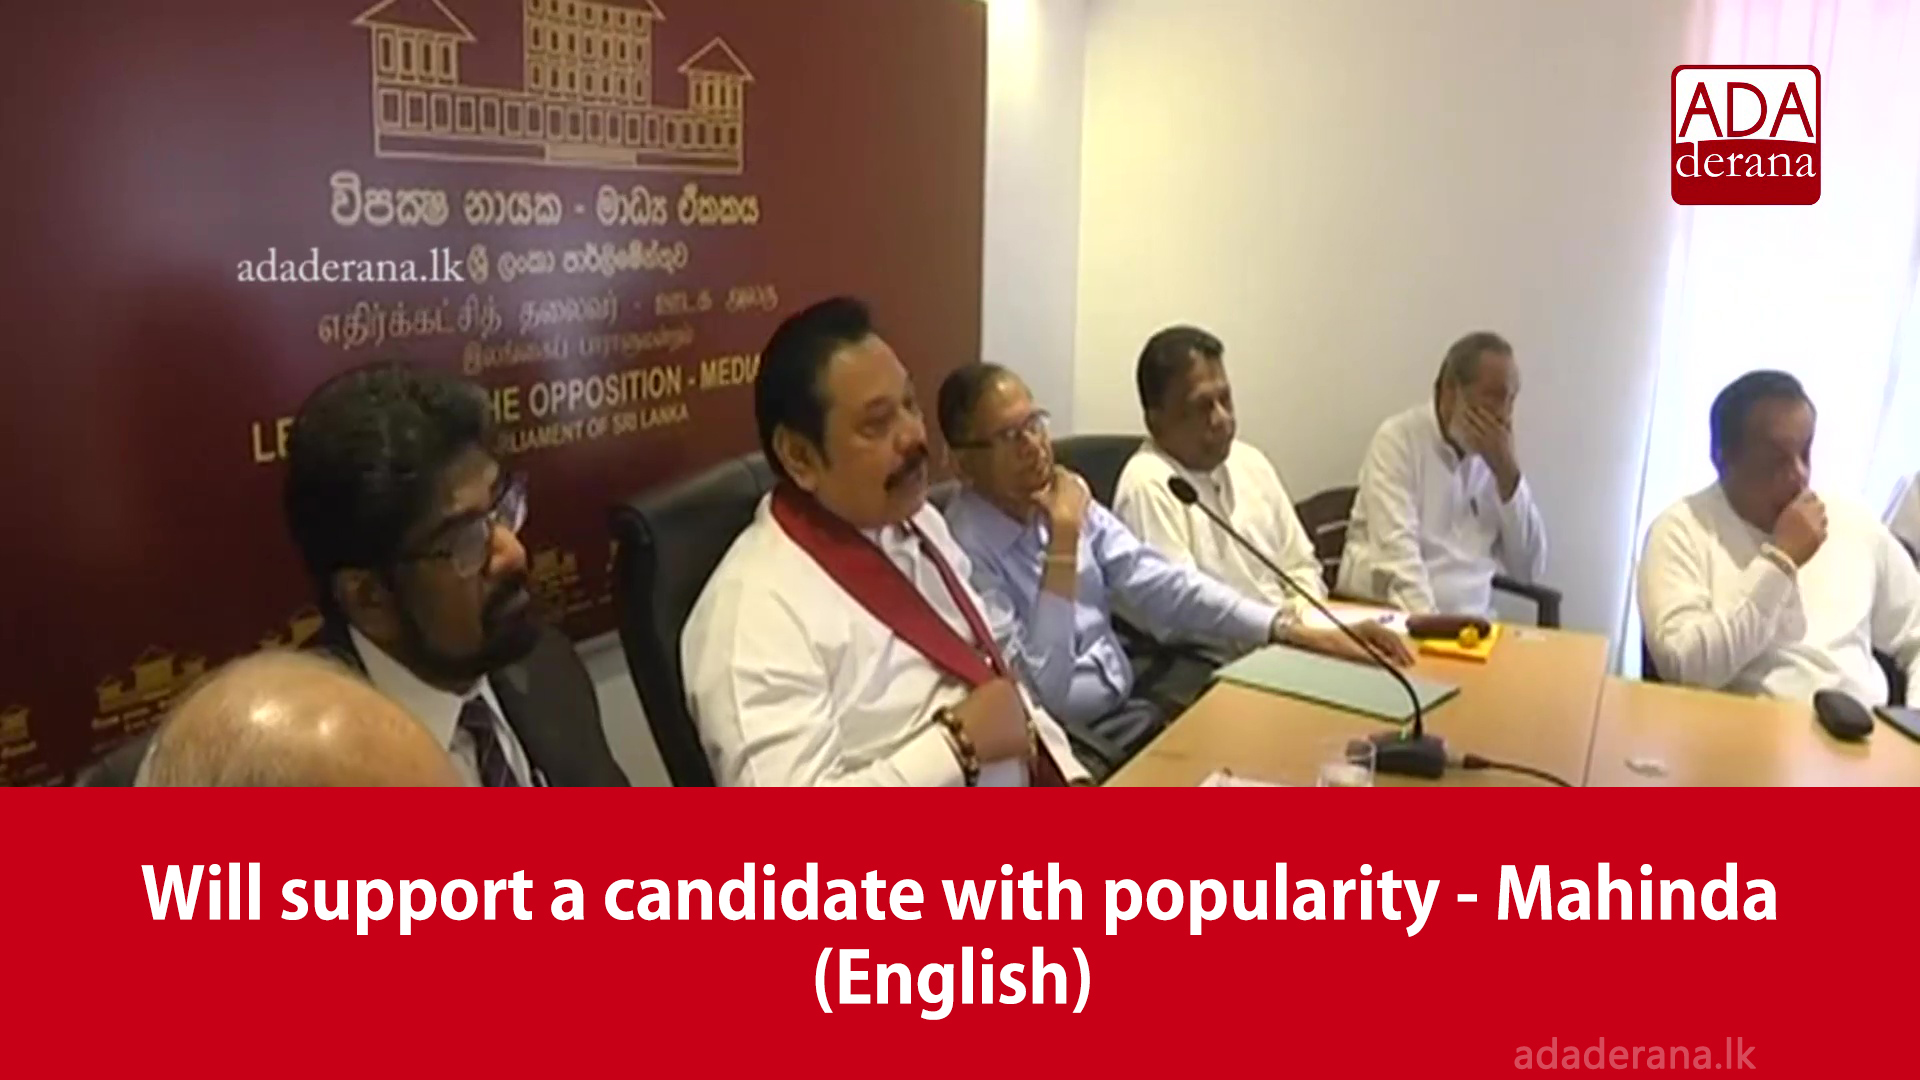 Will support a candidate with popularity - Mahinda (English)